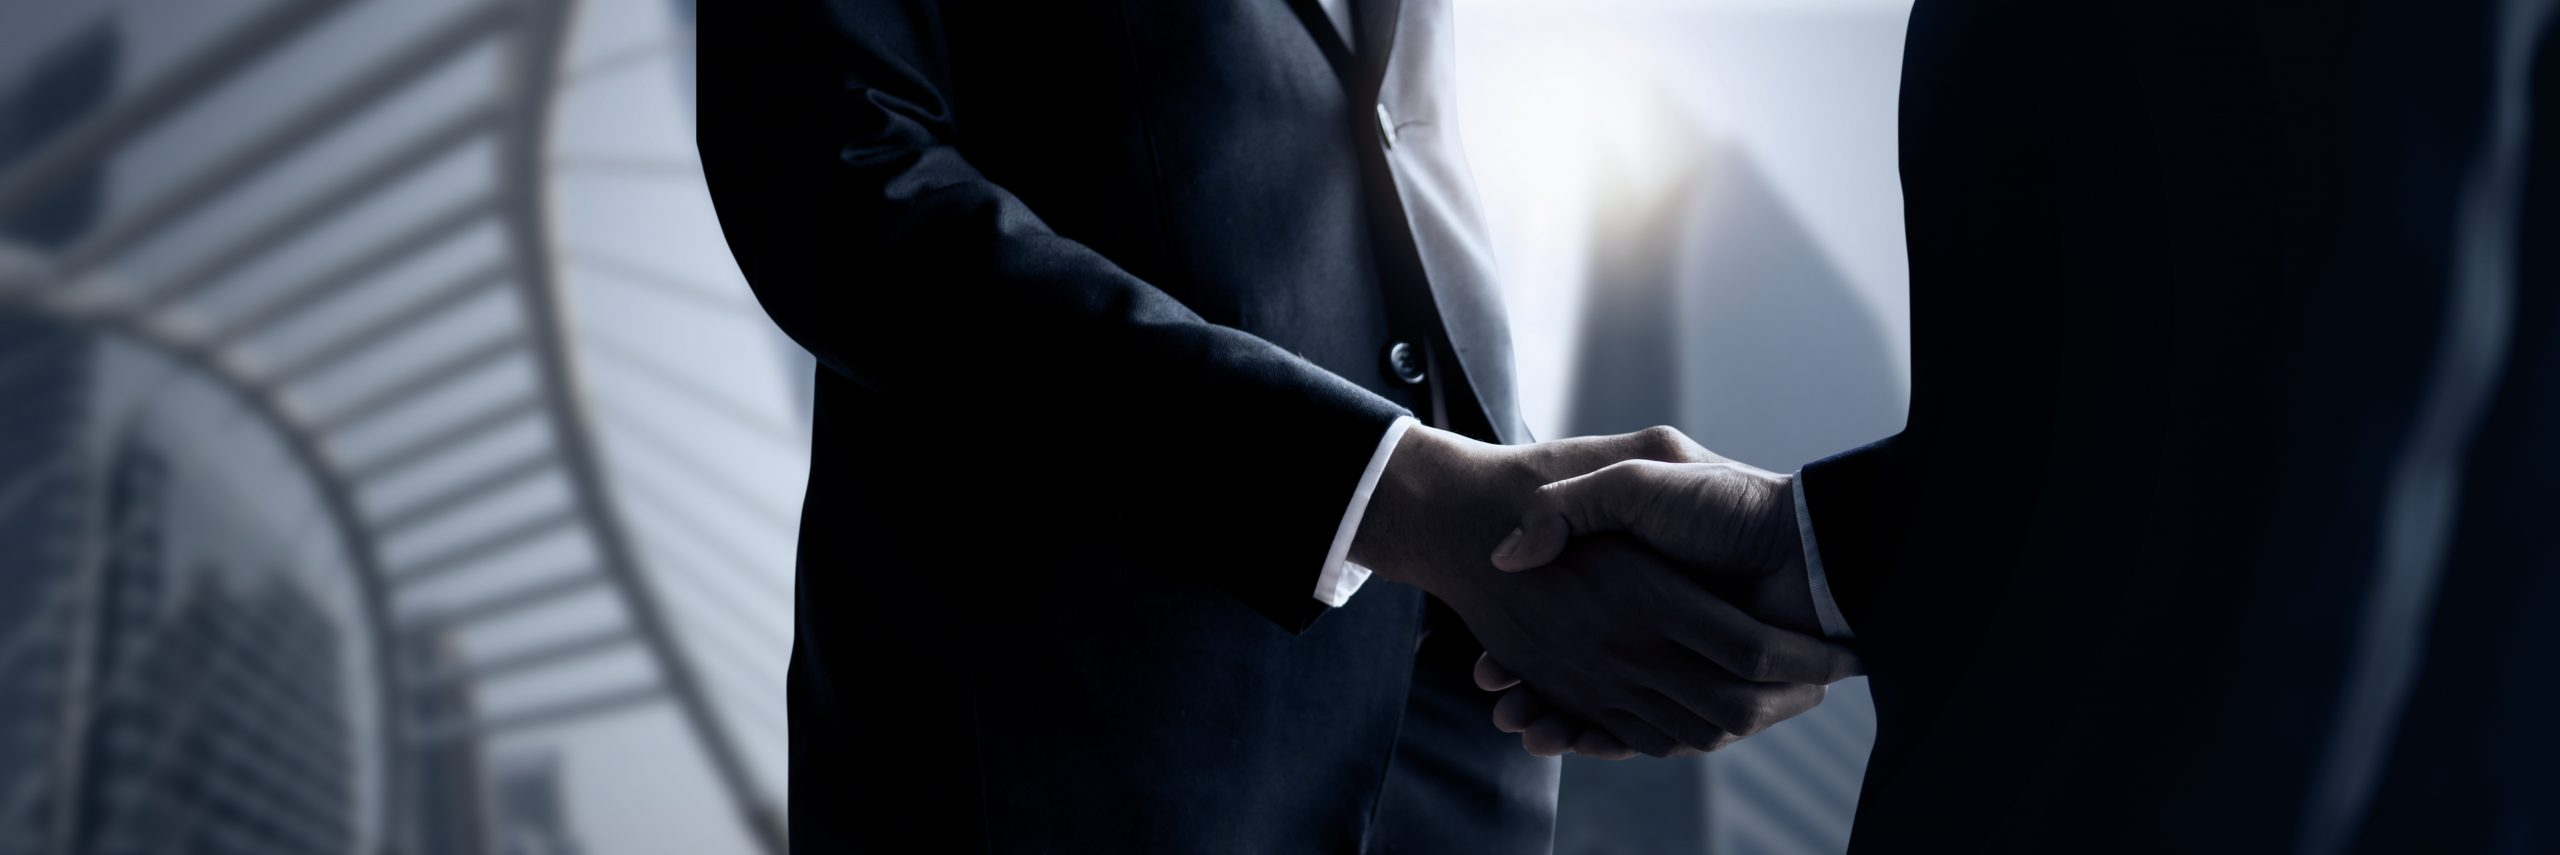 Business people shaking hands, close up hand shake of successful